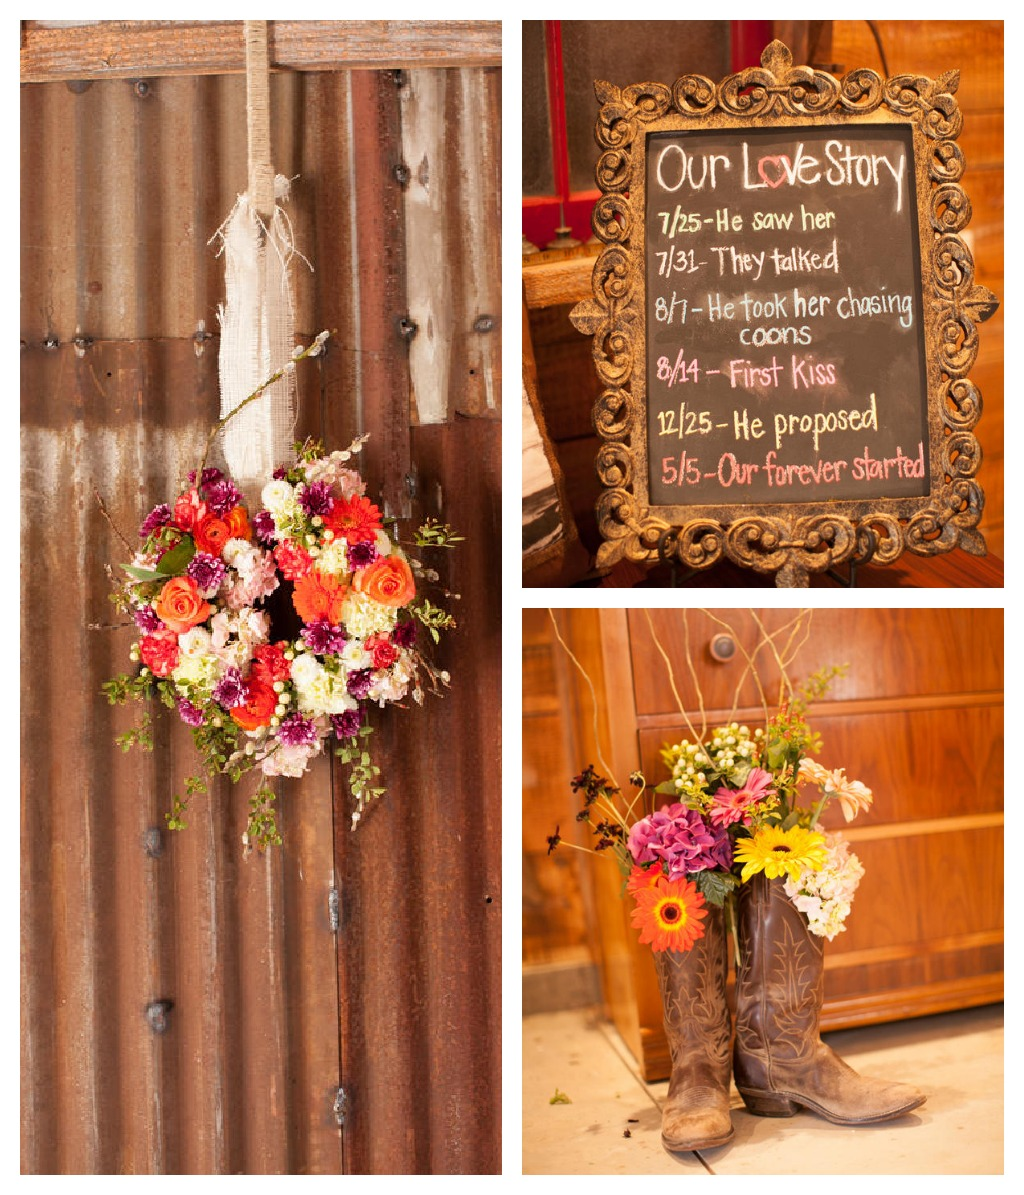 Memorable Wedding: Decorating Ideas For A Barn On Your